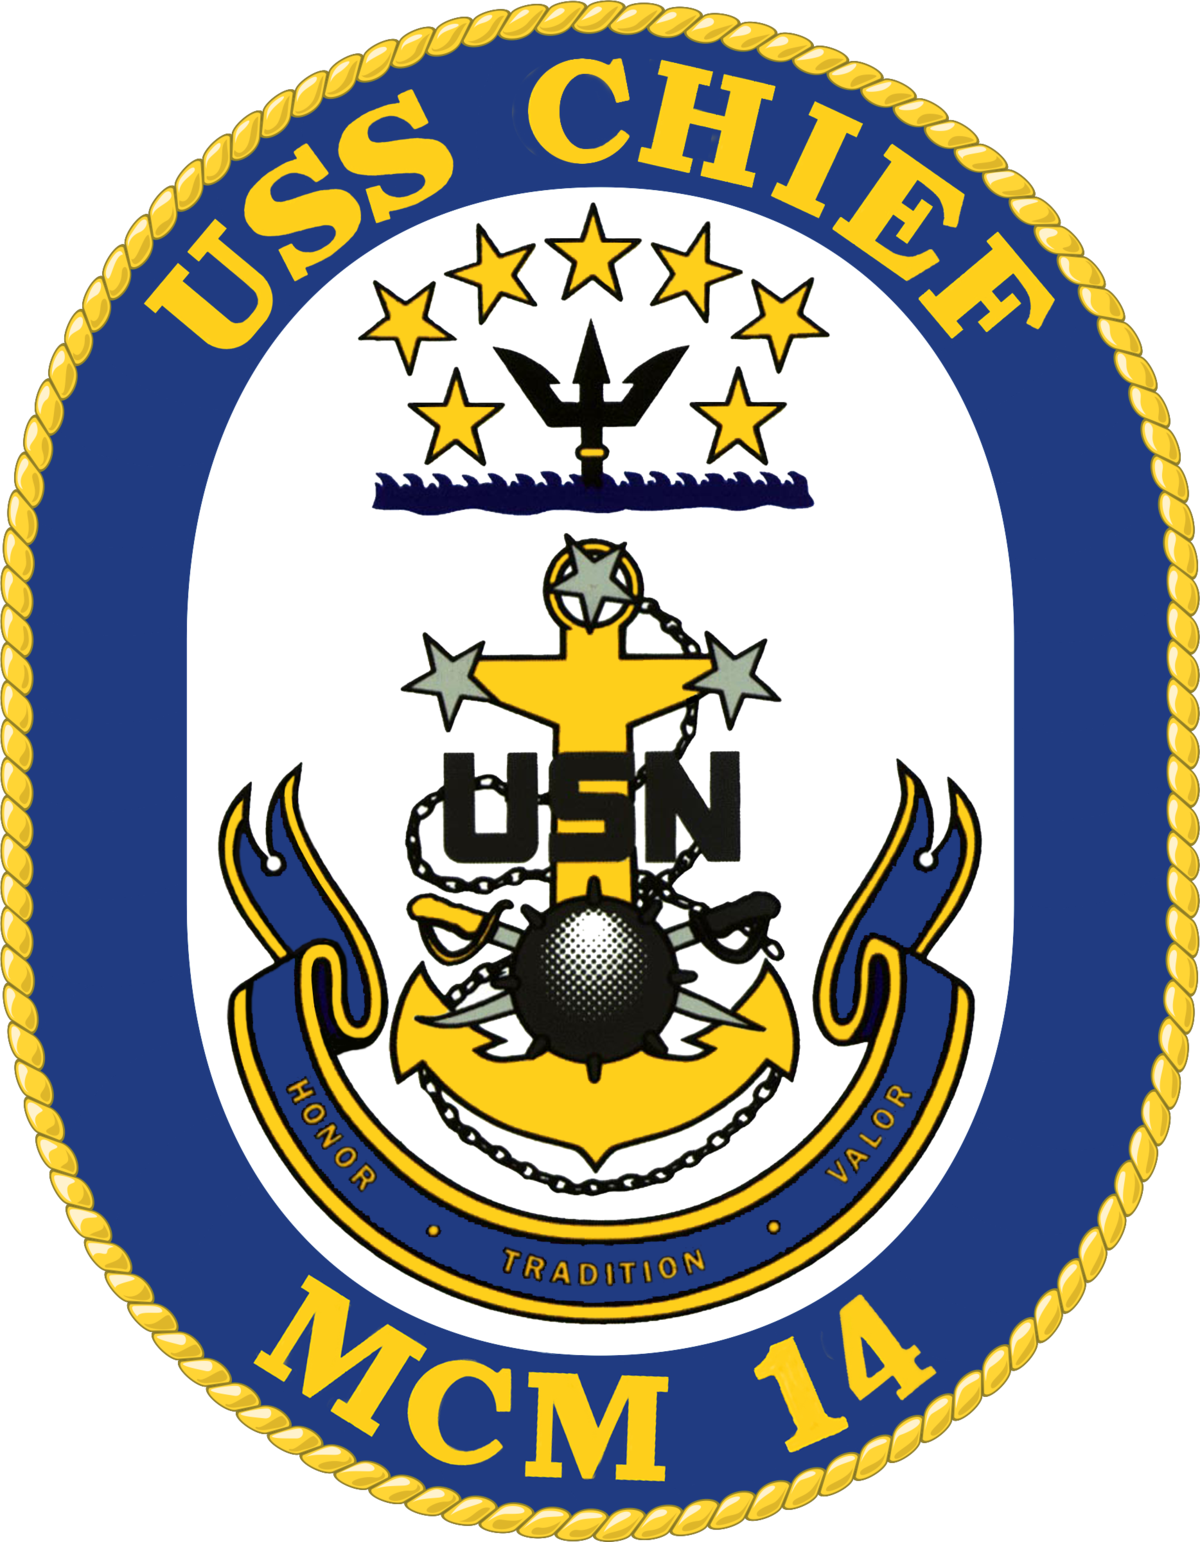 Mcm logo clipart vector download USS Chief (MCM-14) - Wikipedia vector download